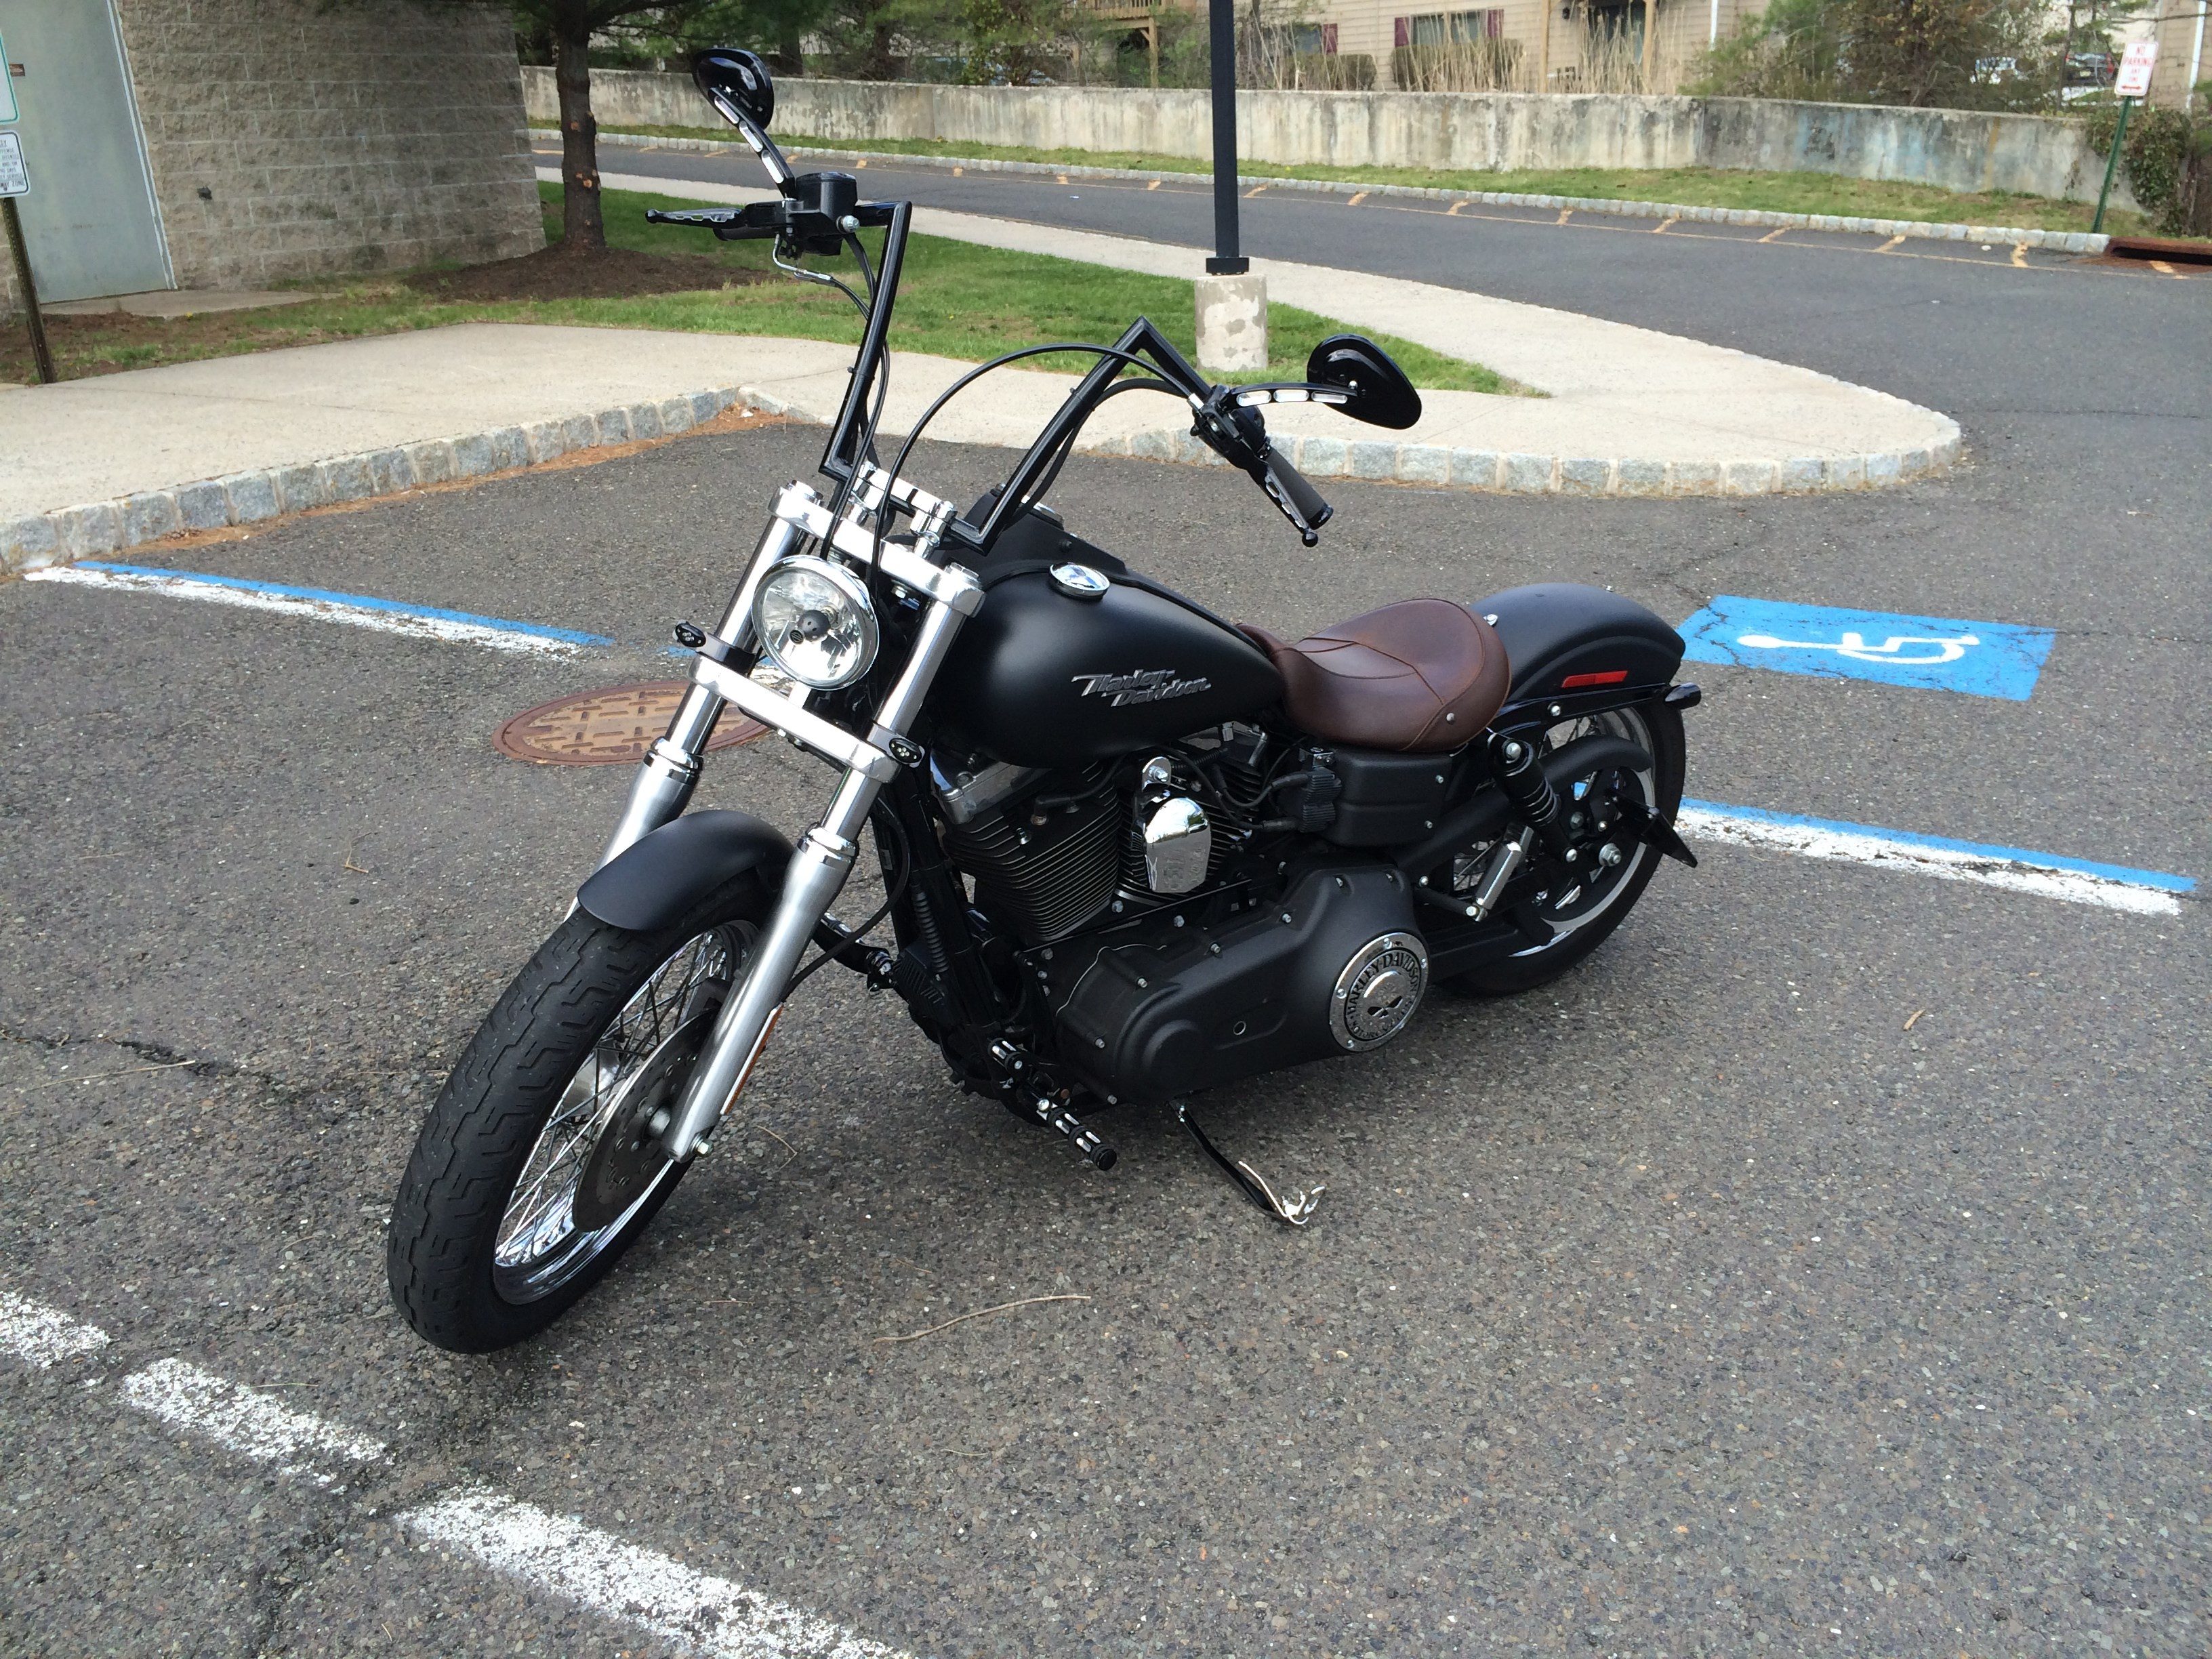 harley turns petrol into noise class diagram for hospital management system 2006 davidson fxdb i dyna street bob black